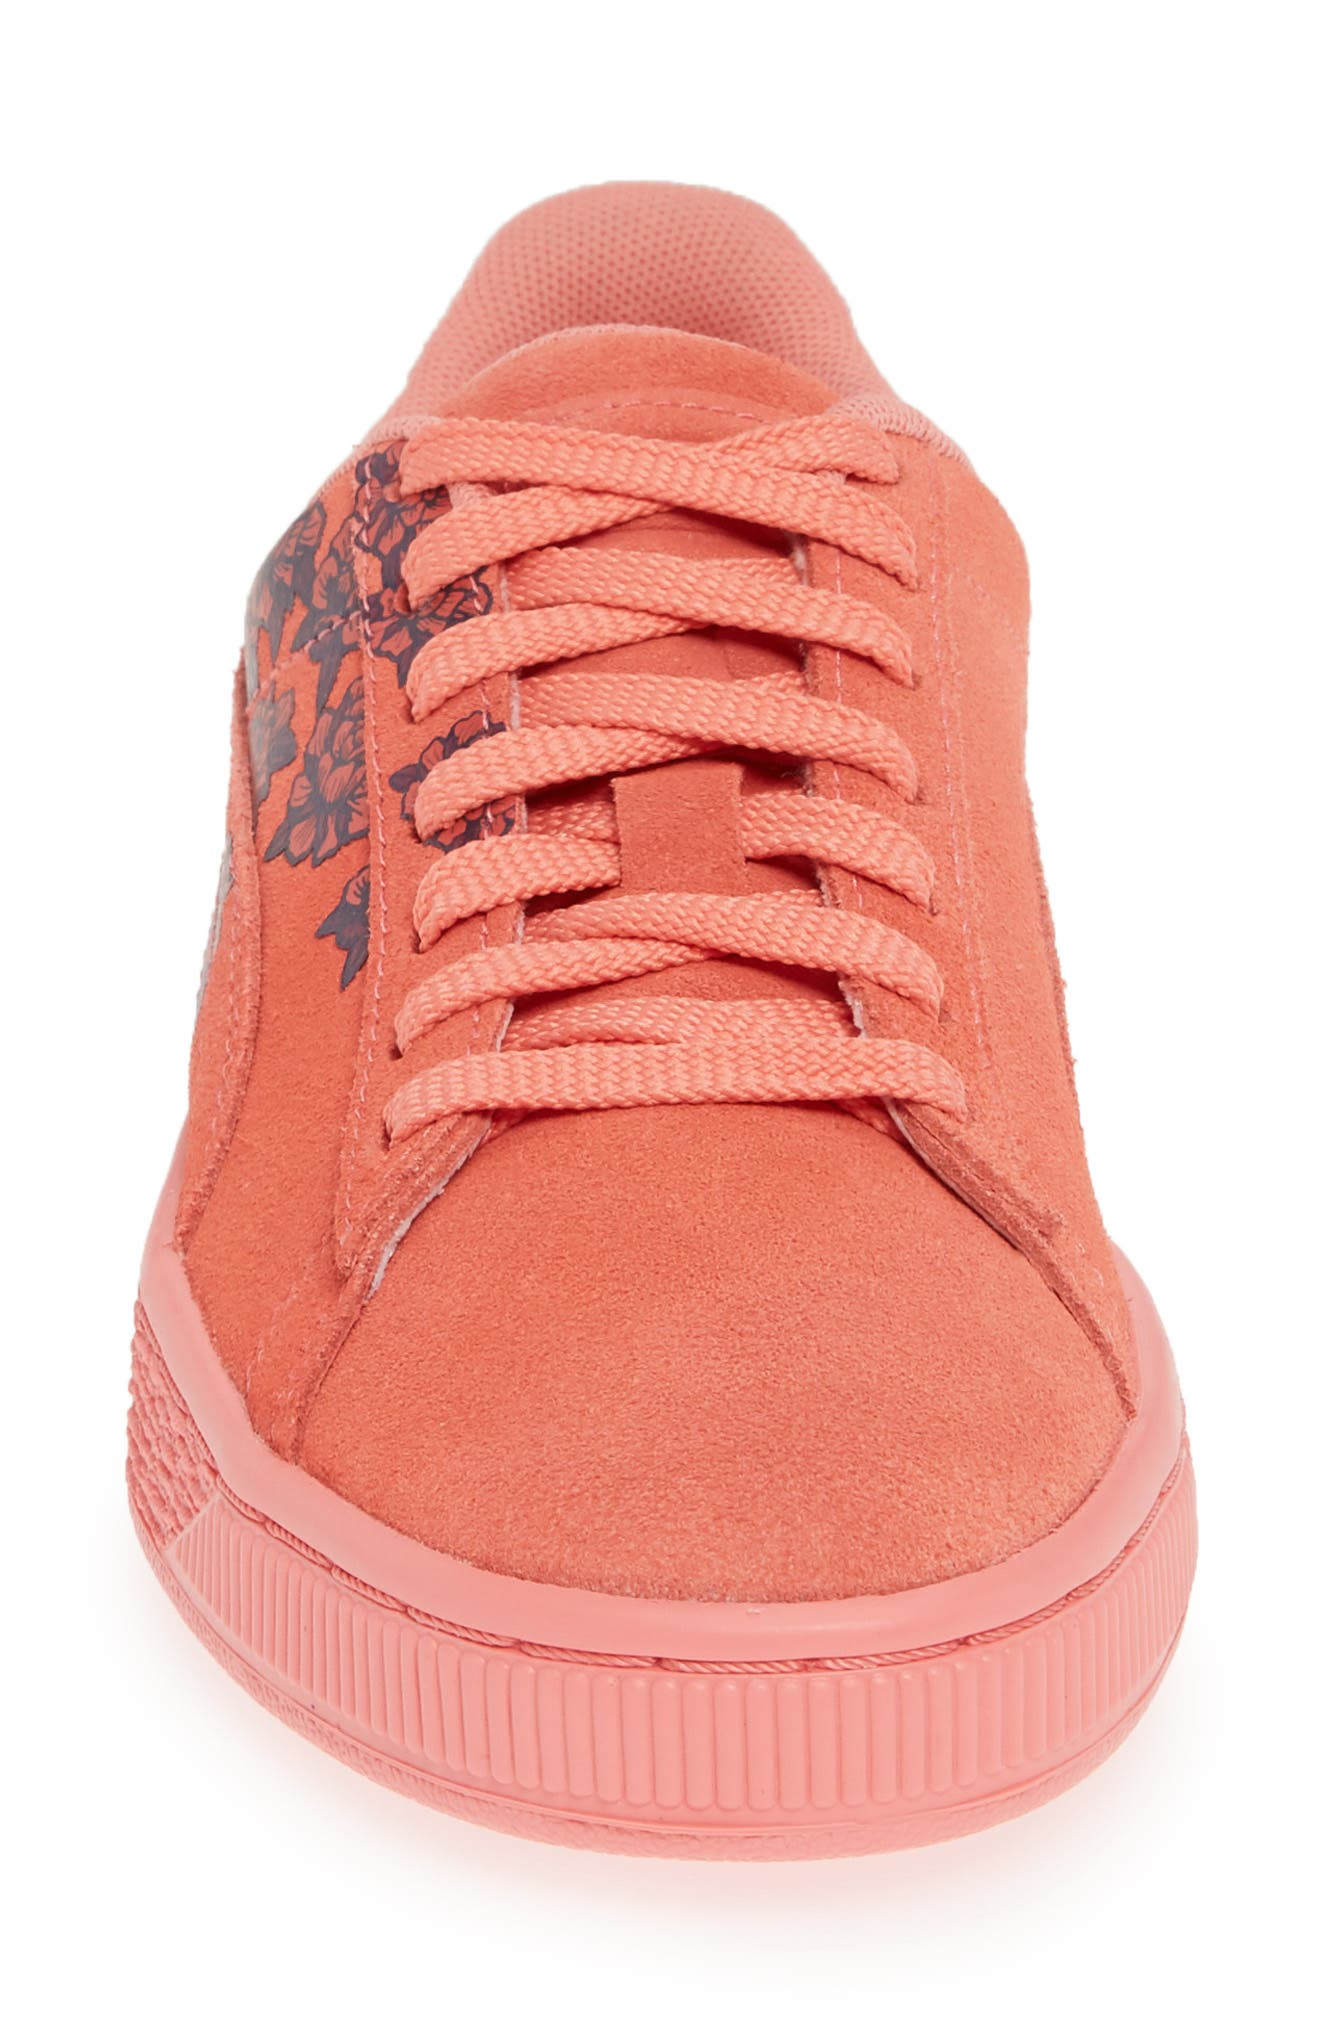 PUMA, Suede TOL Graphic Sneaker, Alternate thumbnail 4, color, SHELL PINK